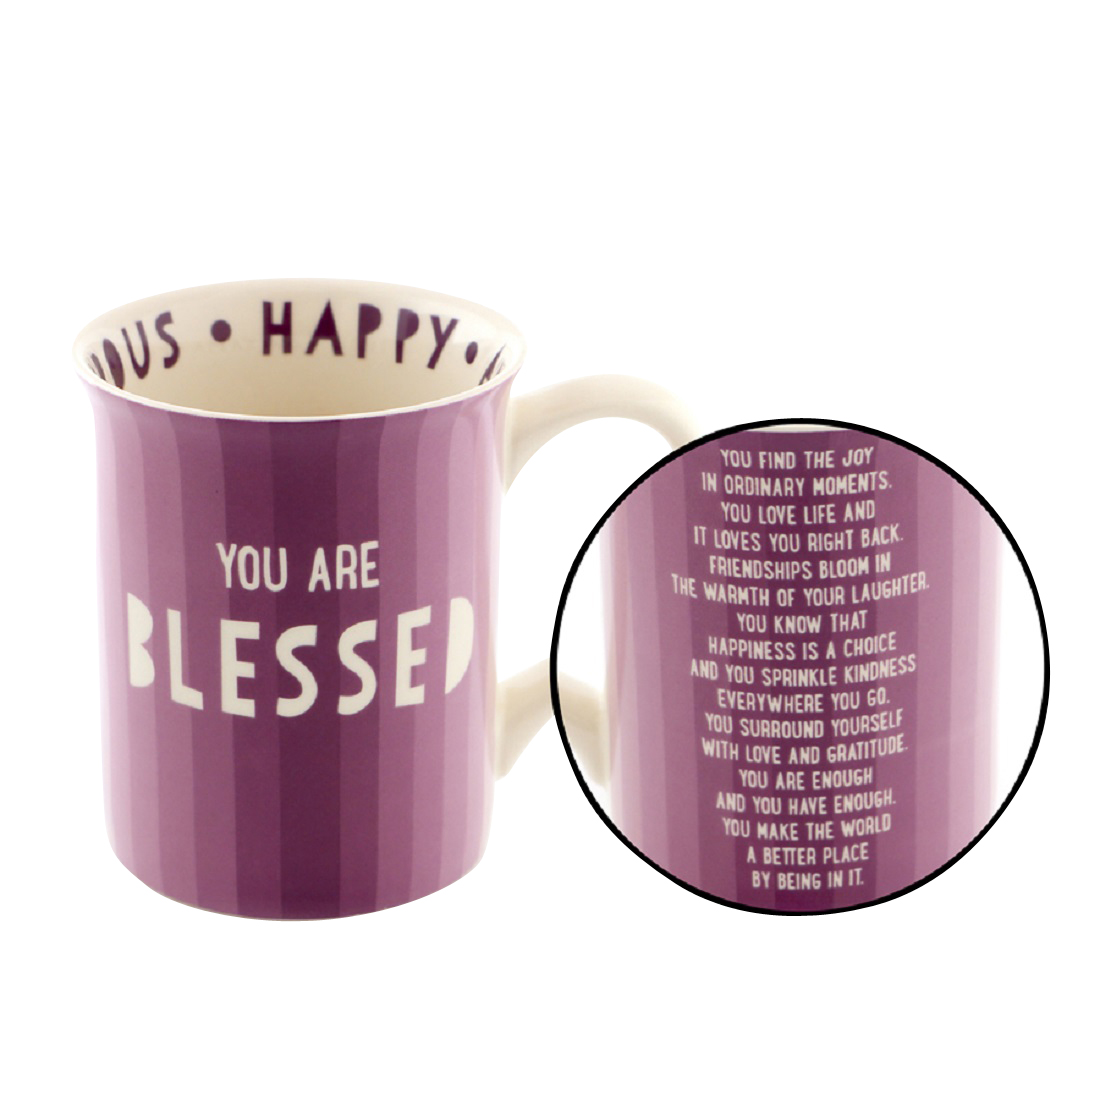 You are Blessed Mugs - set of 4